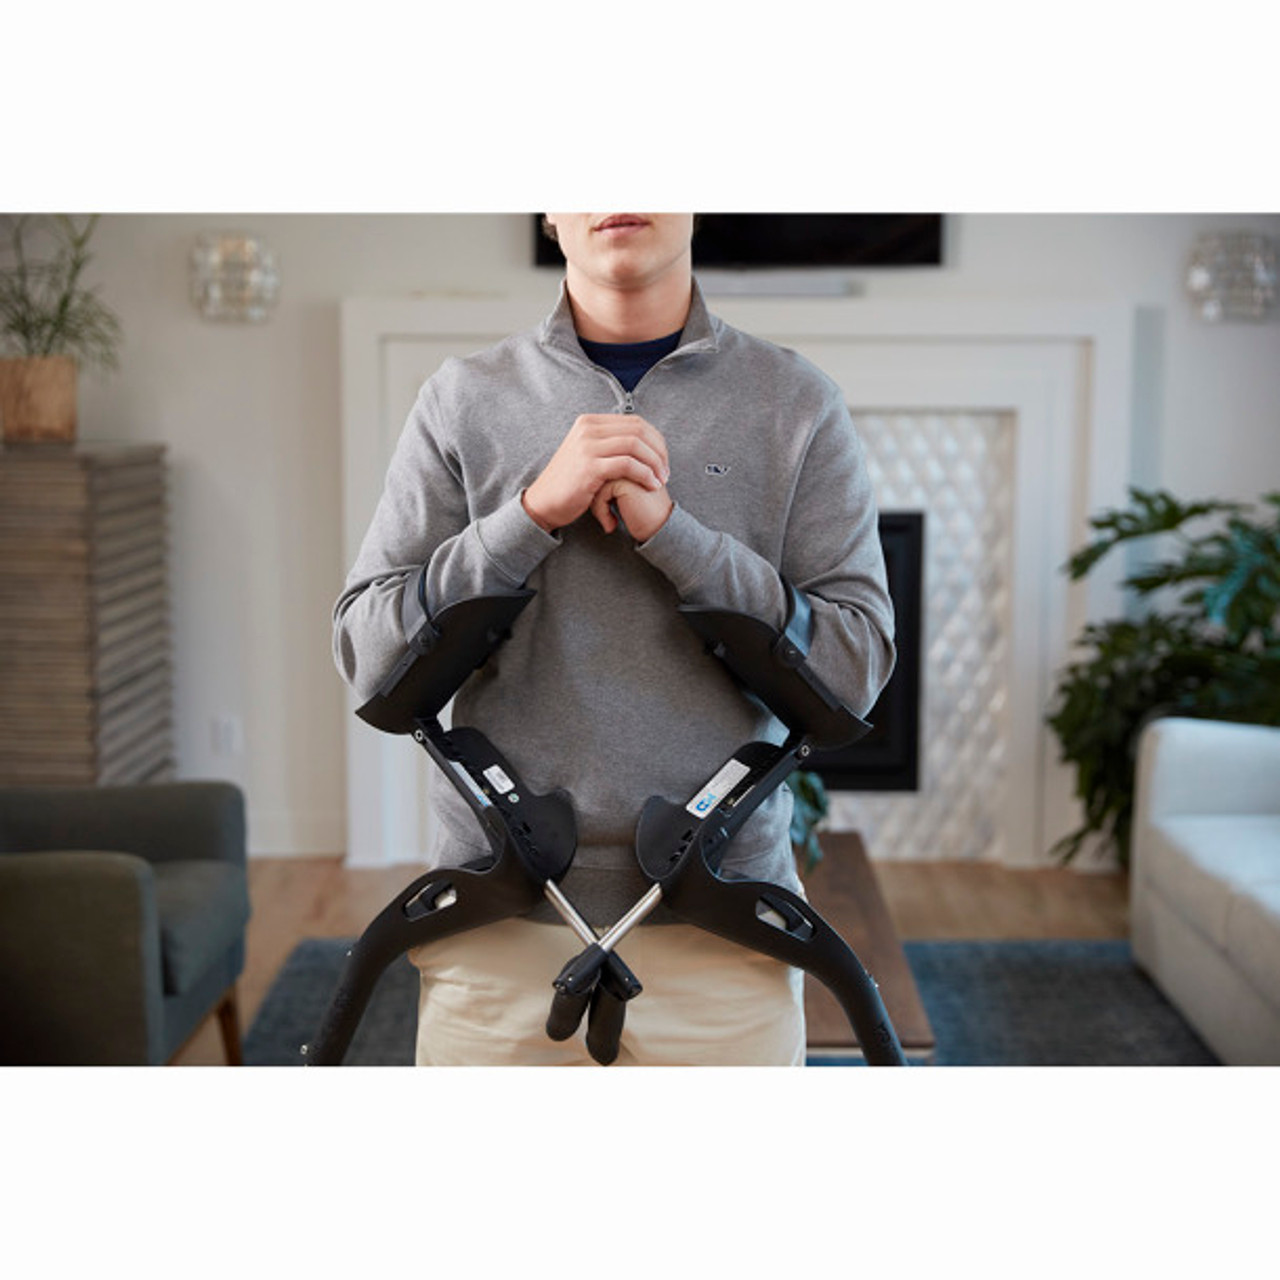 Mobility Designed Forearm Comfort Crutch, by Drive Medical